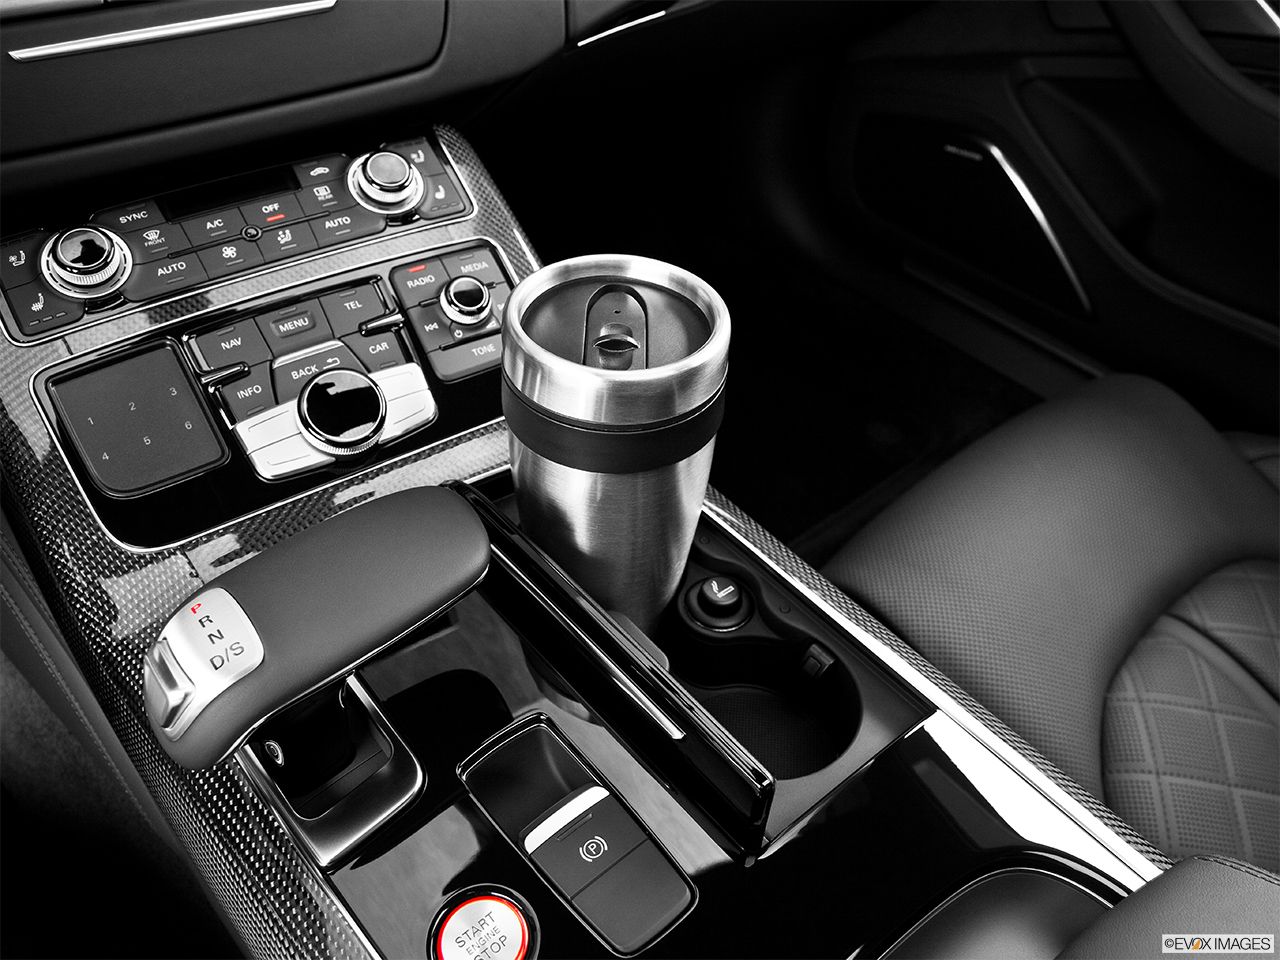 2014 Audi S8 4.0 TFSI Cup holder prop (primary).